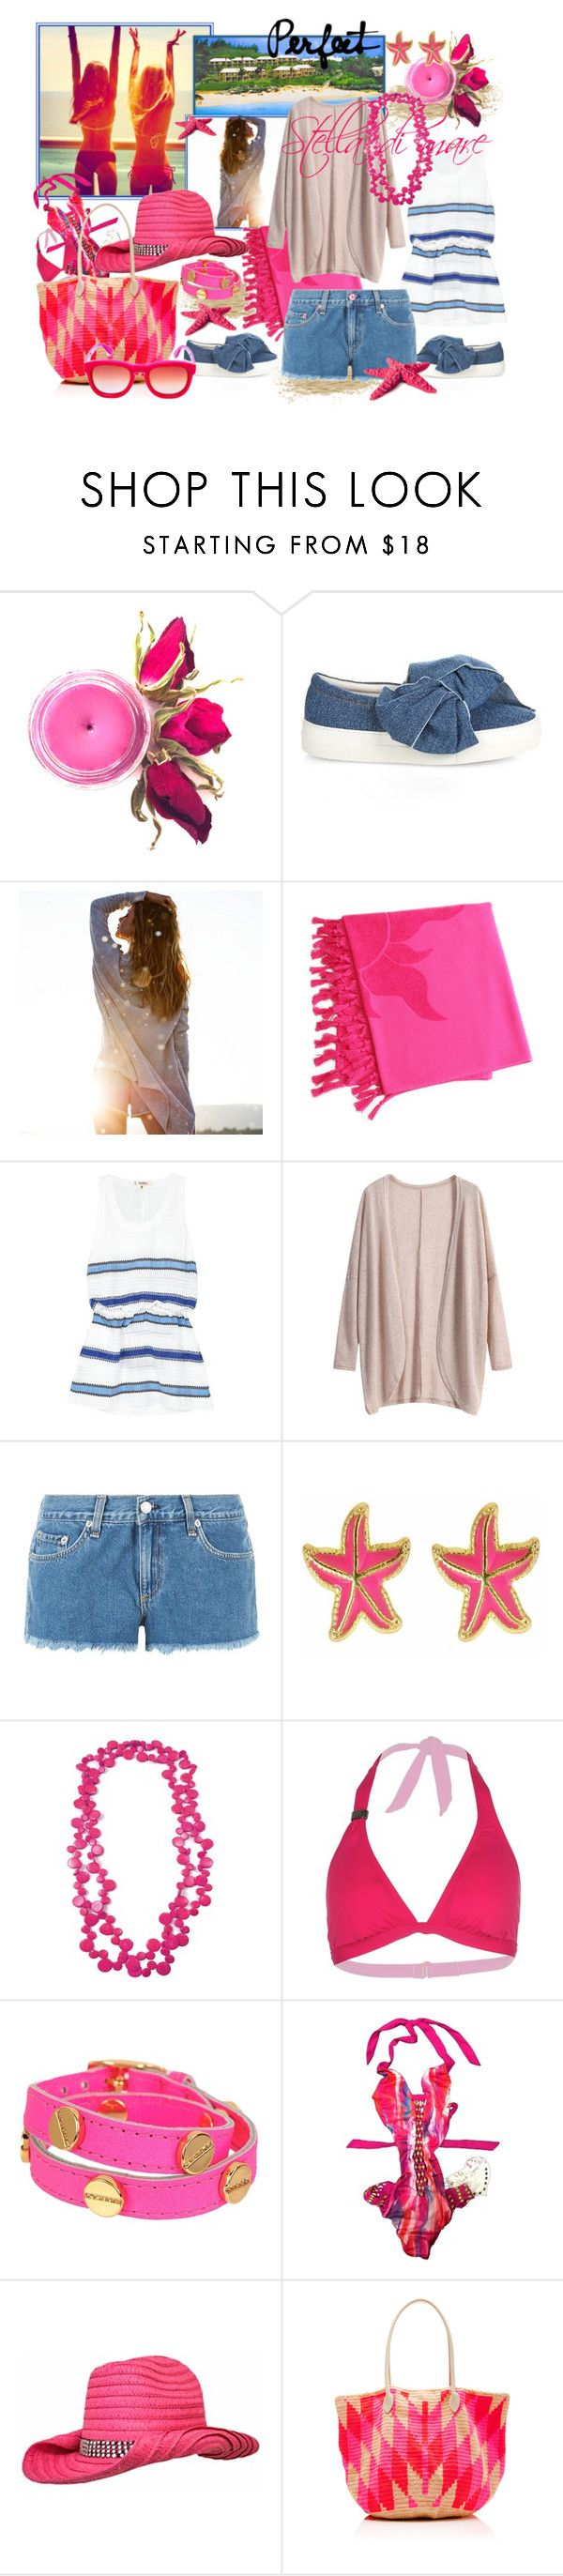 """""""Stella di mare"""" by tasha1973 ❤ liked on Polyvore featuring Joshua's, American Eagle Outfitters, Linum Home Textiles, Lemlem, rag & bone, Fornash, LolÃ«, CC SKYE, Beach Bunny and Sophie Anderson"""